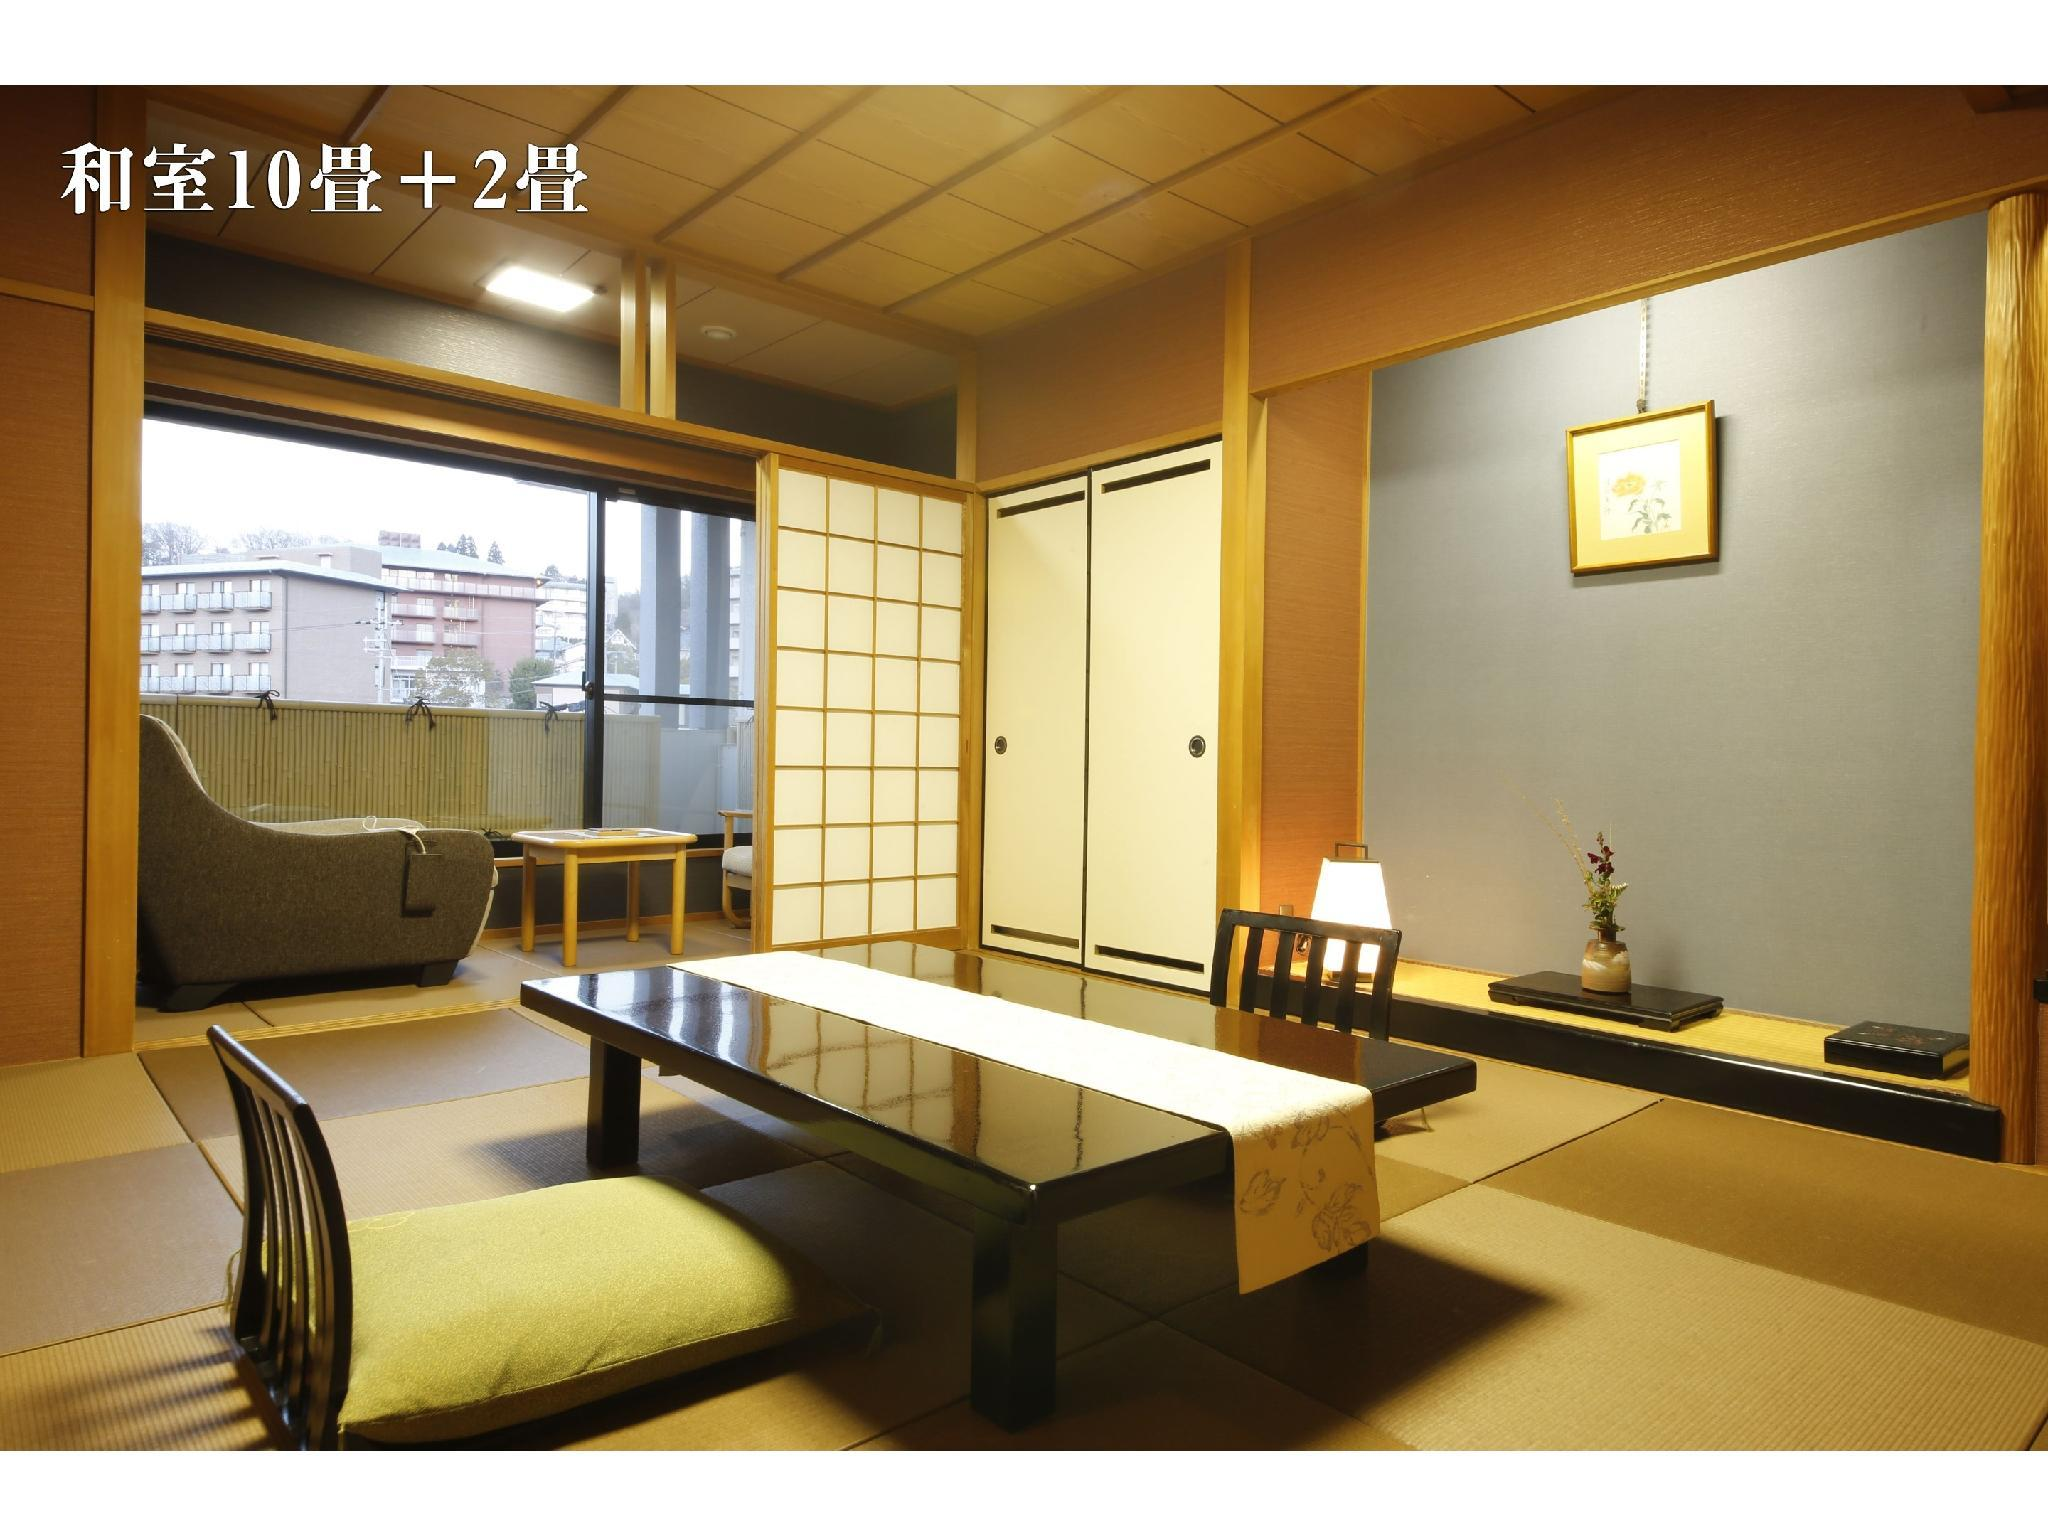 和式房10帖+2帖榻榻米+按摩椅 (Japanese-style Room with Massage Chair (10 tatami + 2 tatami))